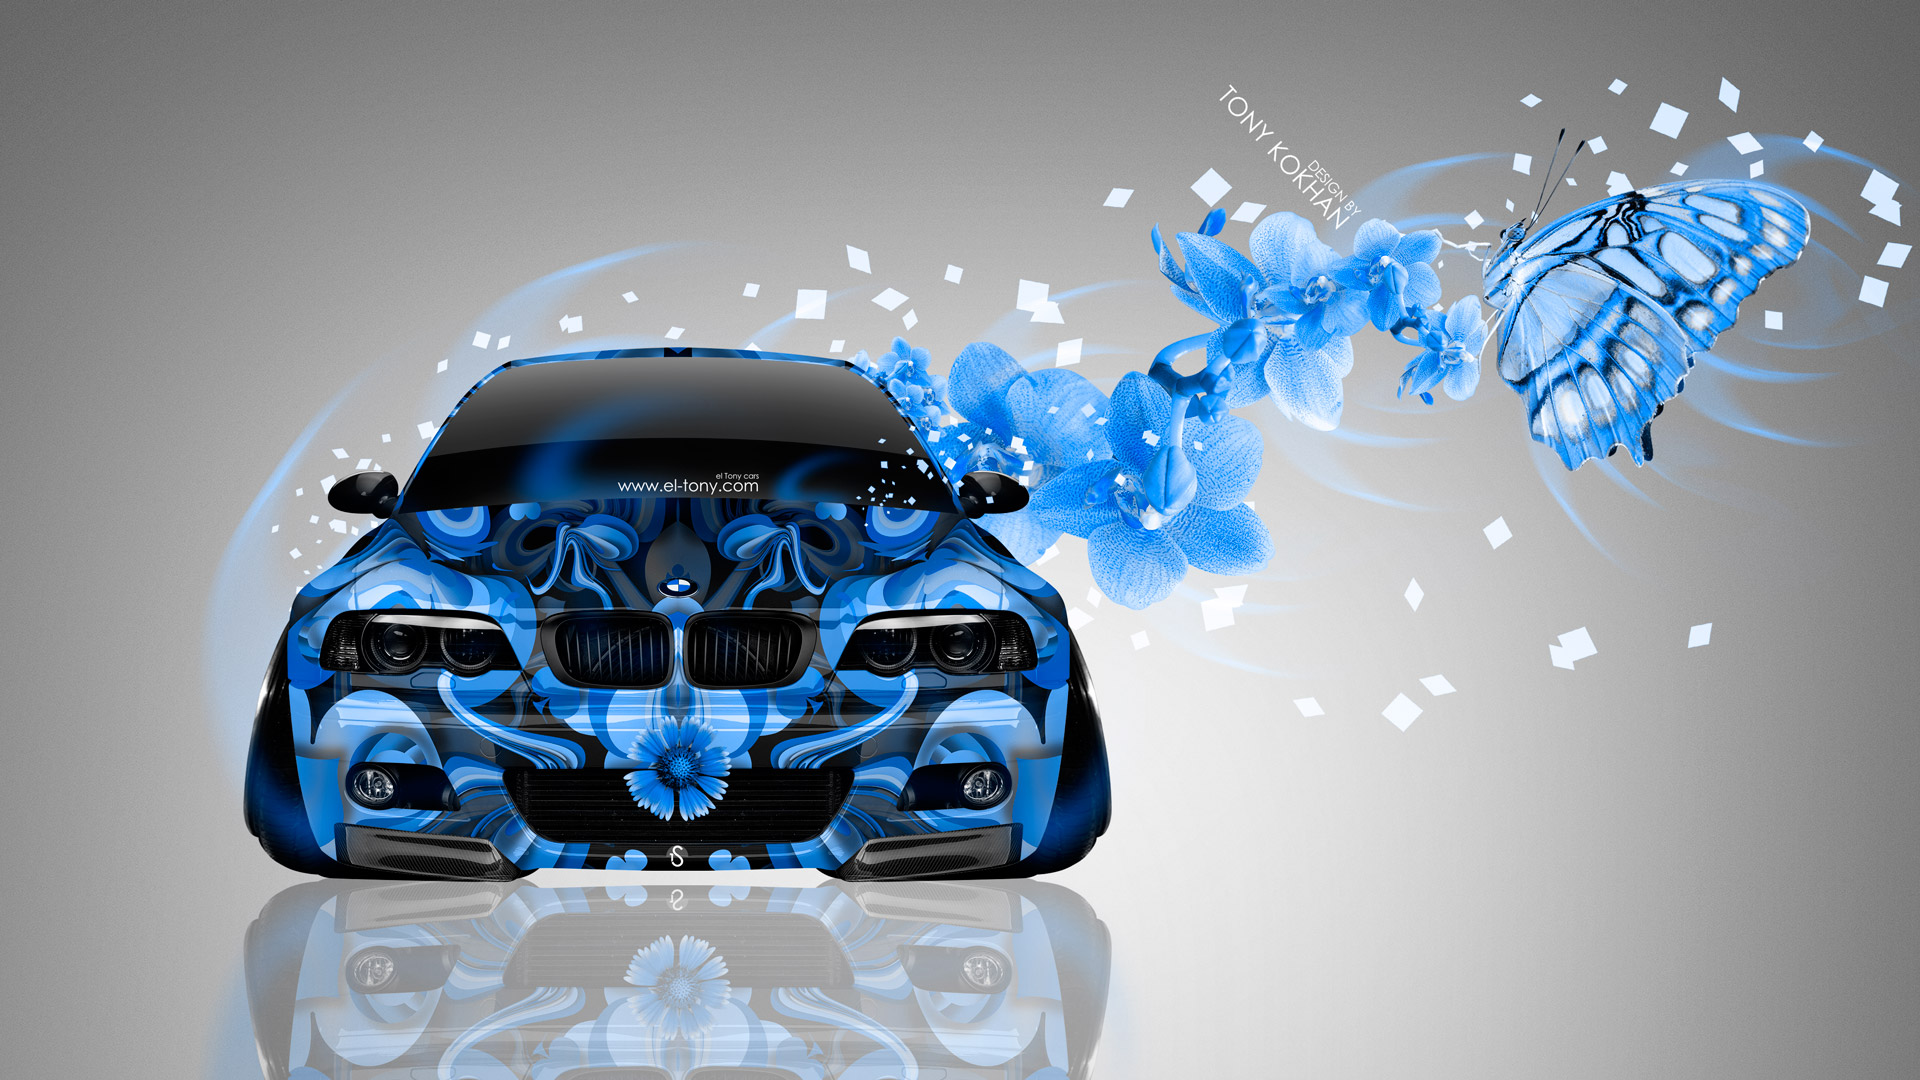 Fantasy Car Wallpapers Bmw M3 E46 Front Fantasy Flowers Butterfly Car 2014 El Tony